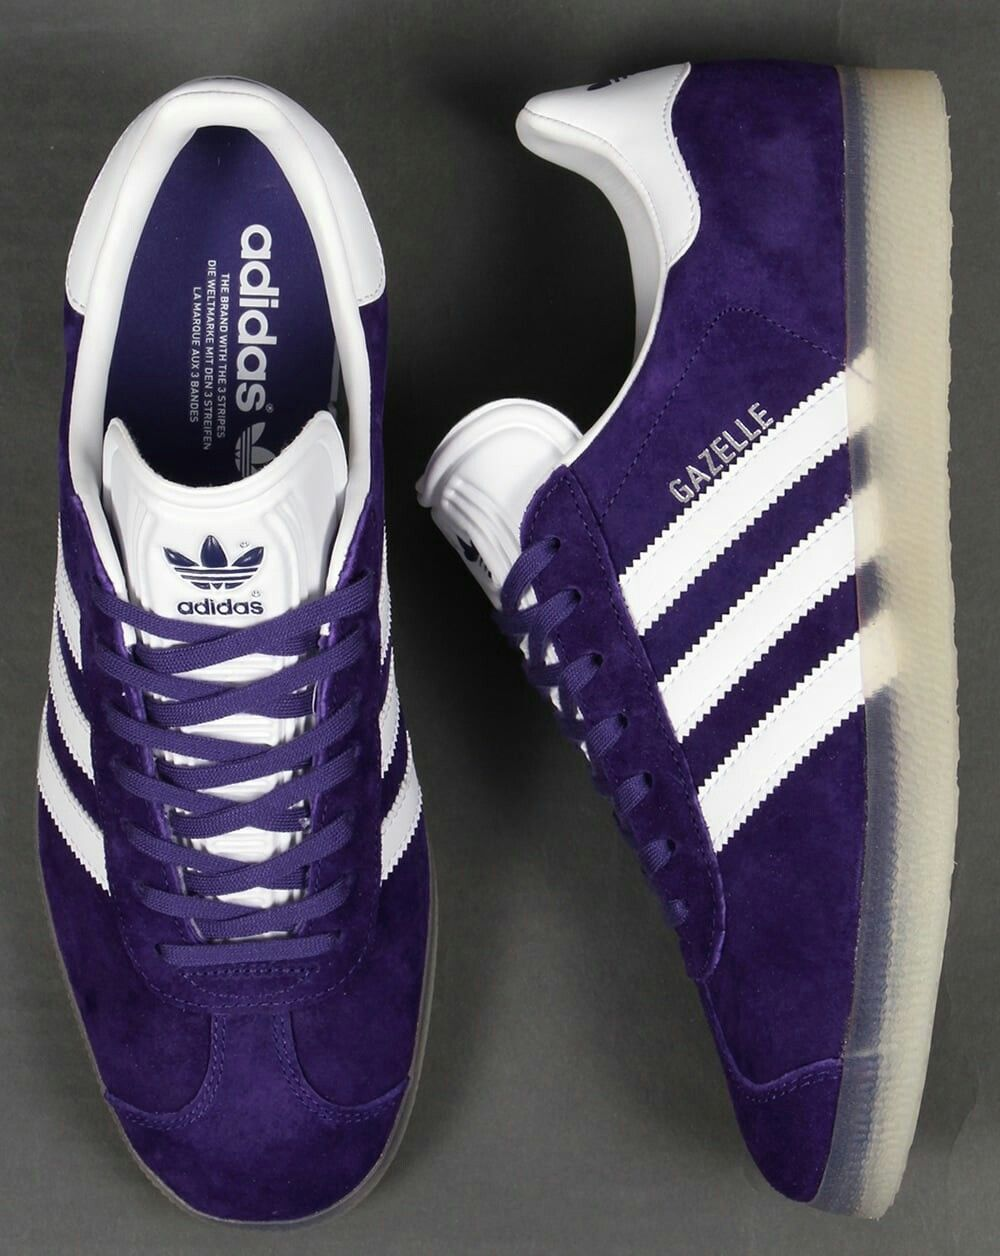 210e7d6dcfdf Gazelle Purple White Iced Gum one of the popular releases of 2016 Clothing